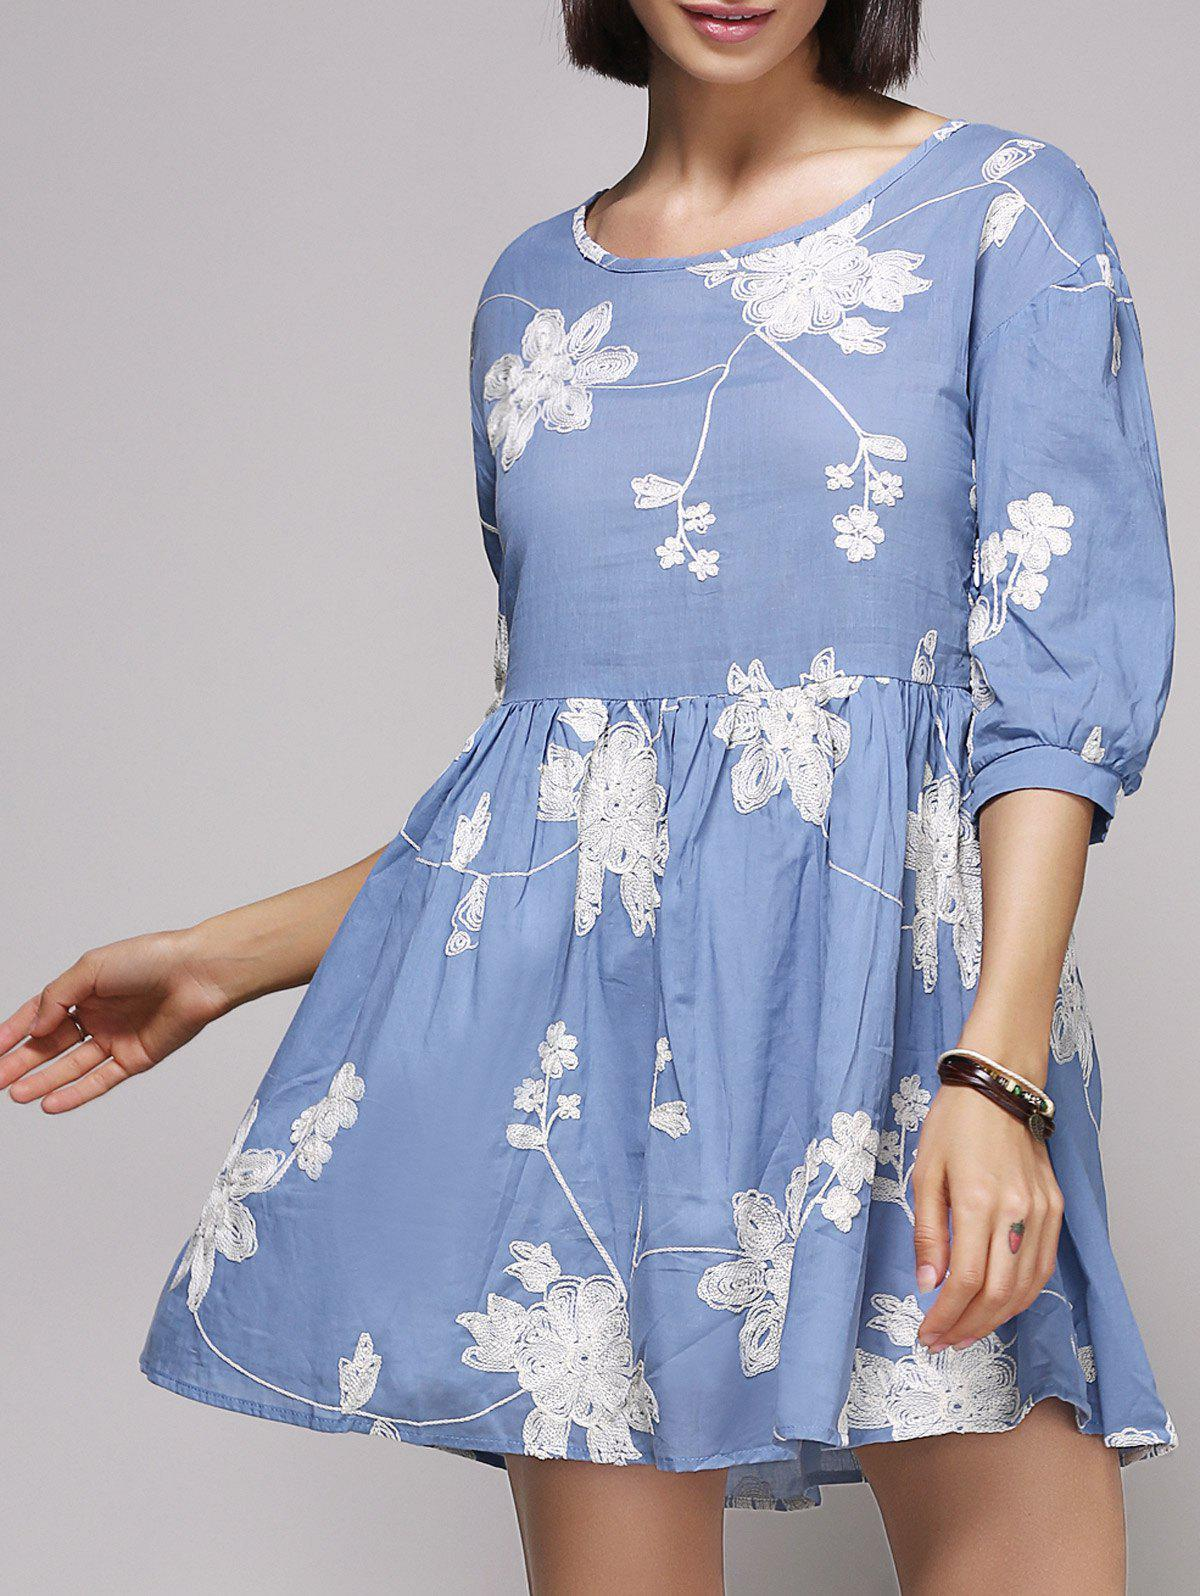 Stylish Women's 3/4 Sleeve Scoop Neck Embroidered Floral Dress - BLUE M